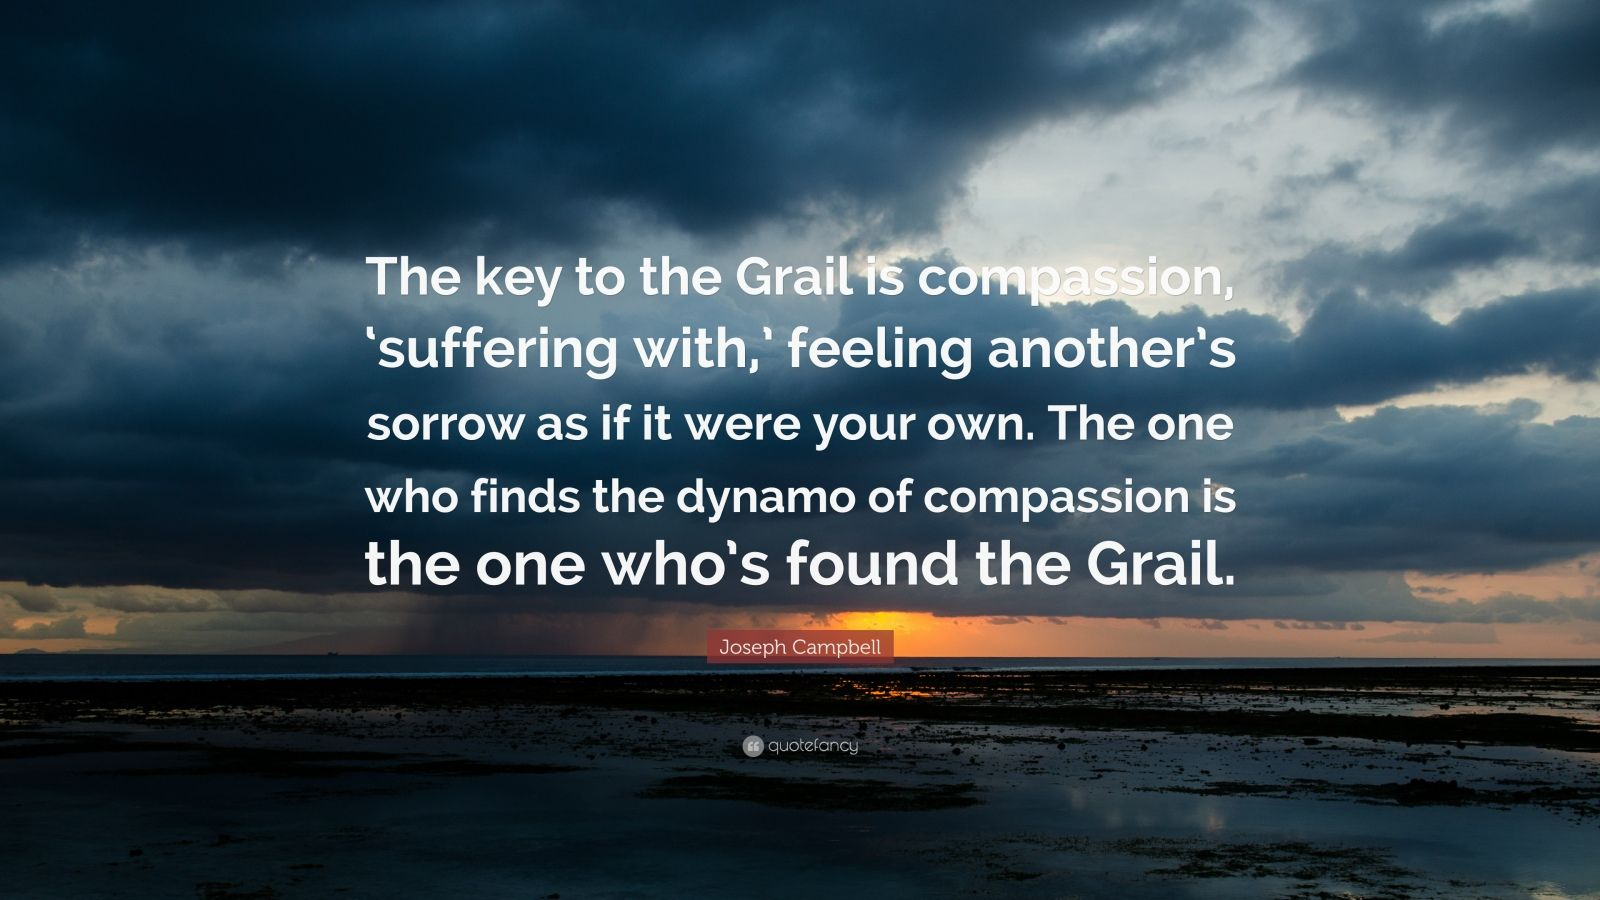 "Joseph Campbell Quote: ""The key to the Grail is compassion, 'suffering with,' feeling another's sorrow as if it were your own. The one who finds the dynamo of compassion is the one who's found the Grail."""